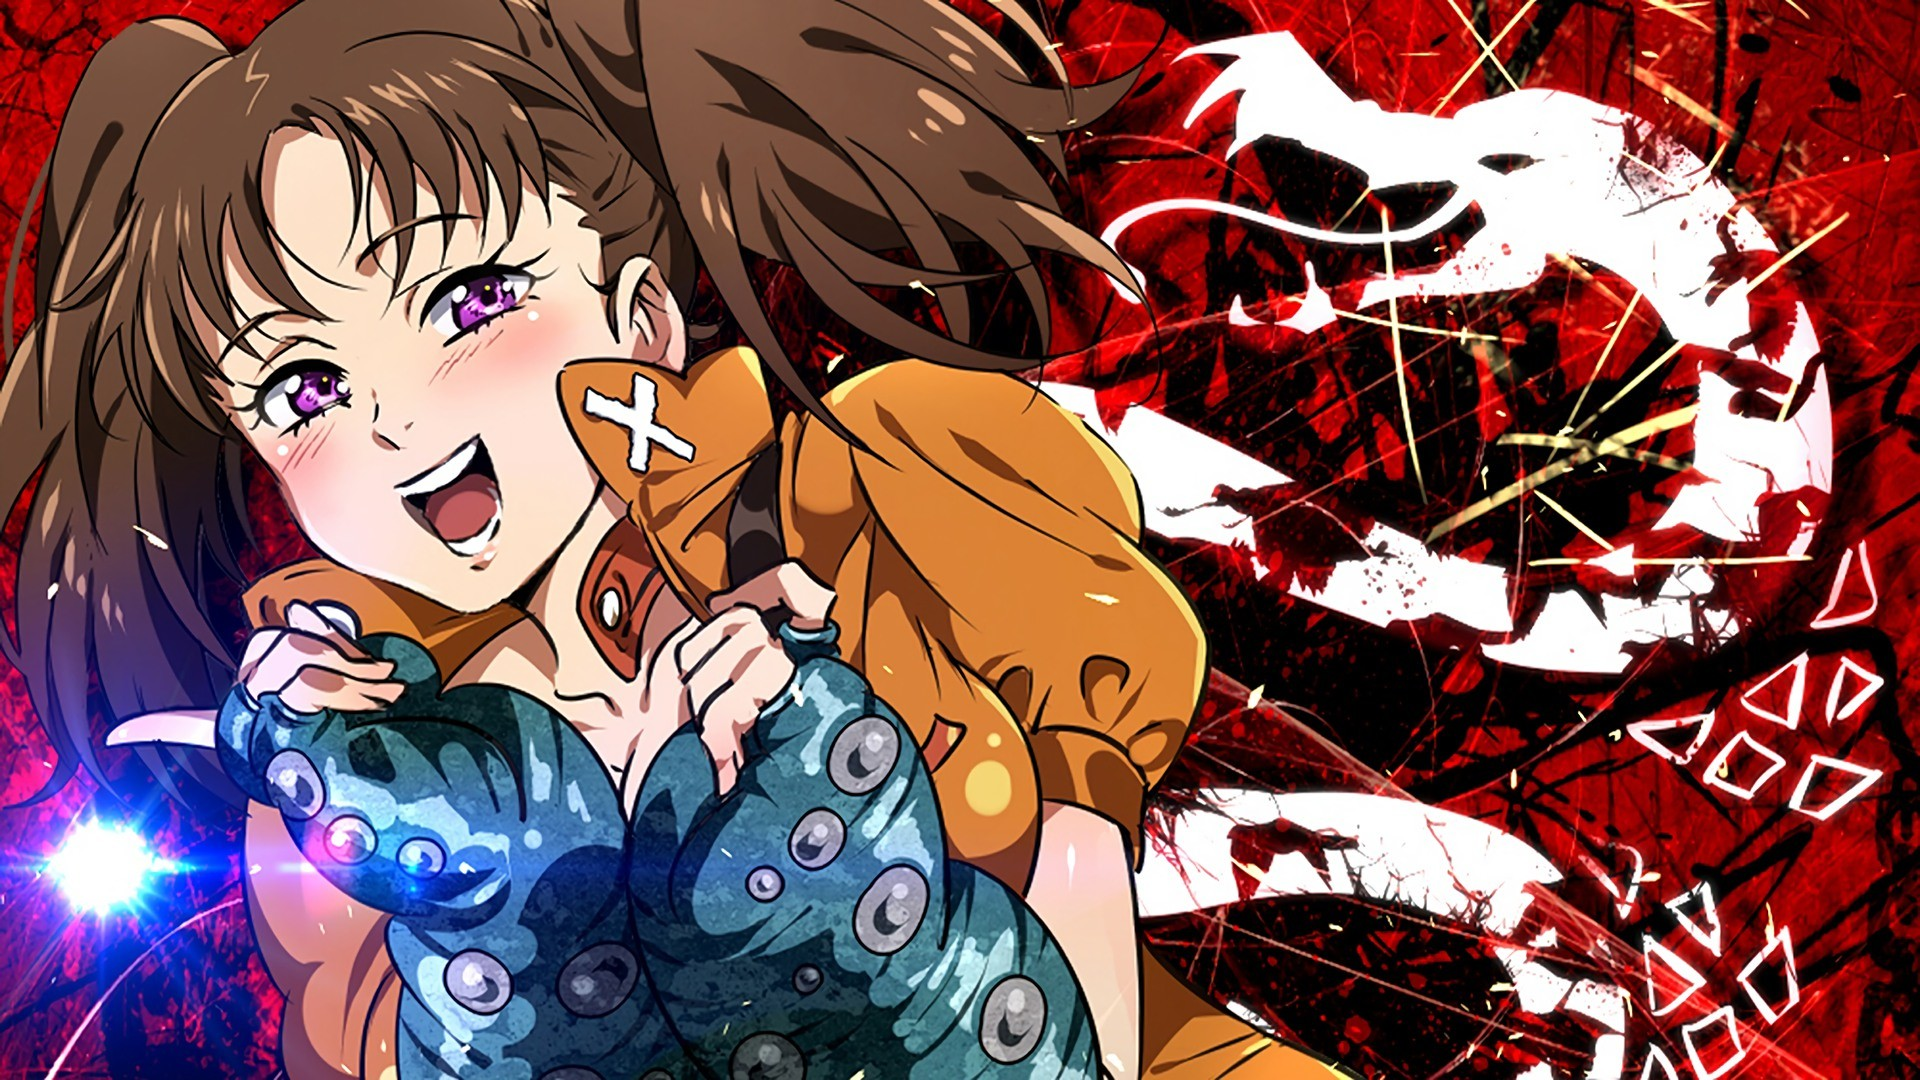 1920x1080 This wallpaper has tags of Diane, Nanatsu No Taizai the Seven Deadly Sins,  Anime, Girls,